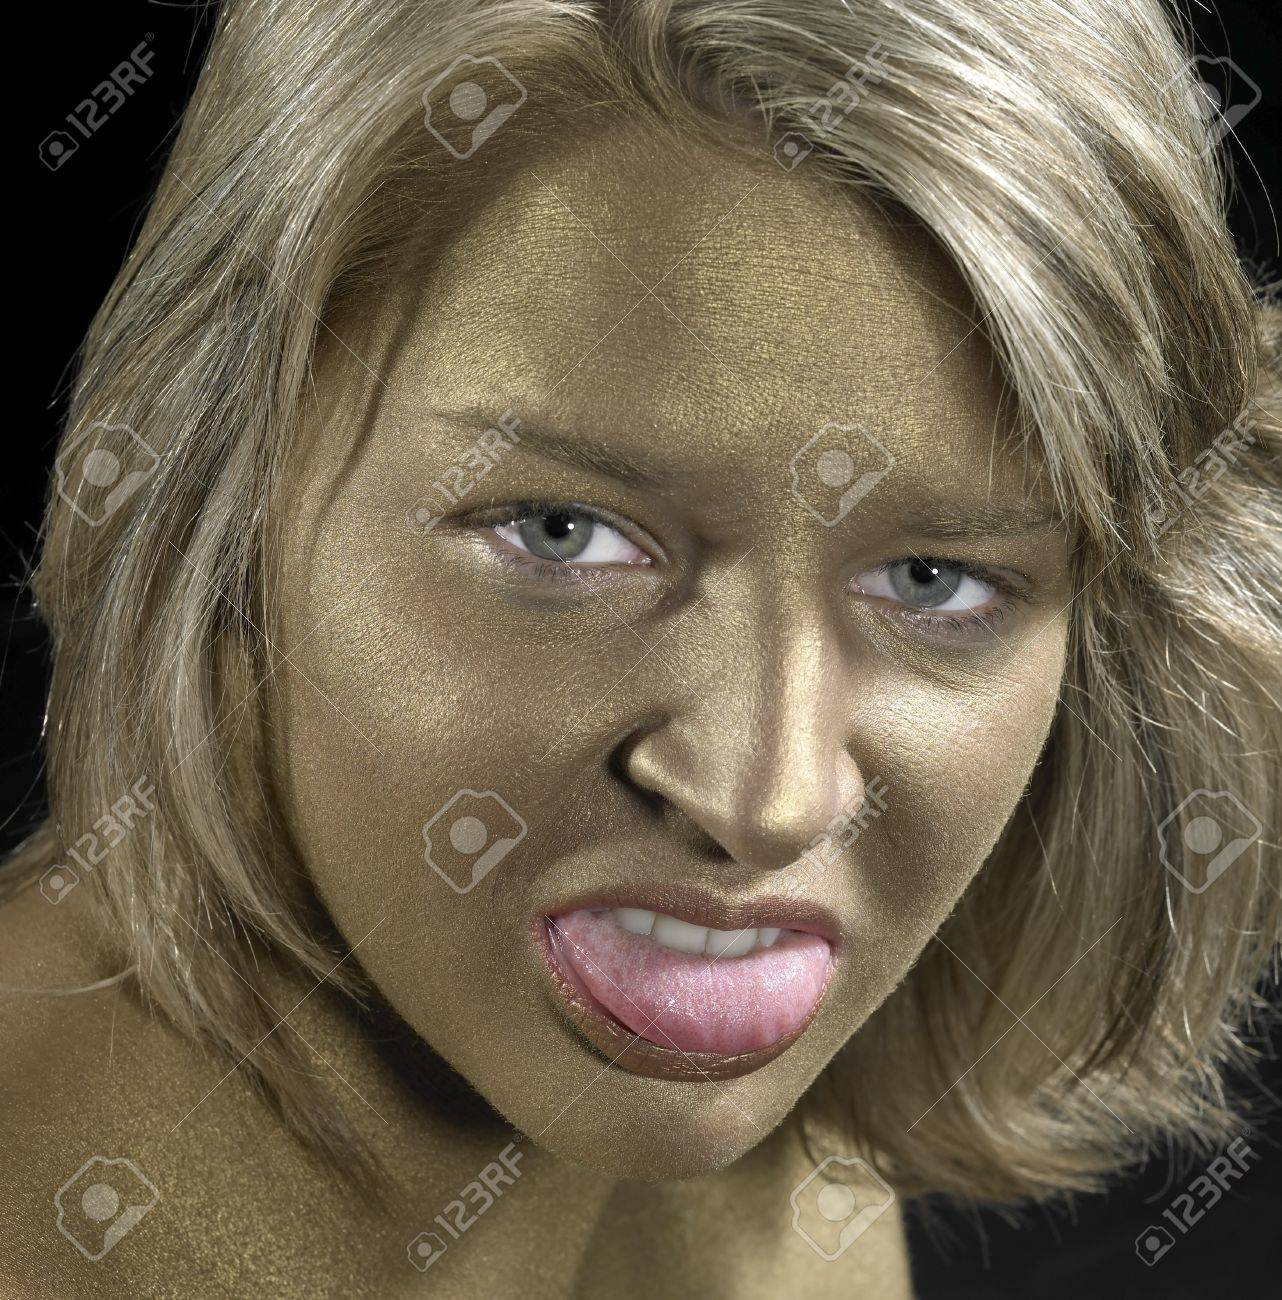 portrait of a angry young woman with golden bodypainted face Stock Photo - 11332969